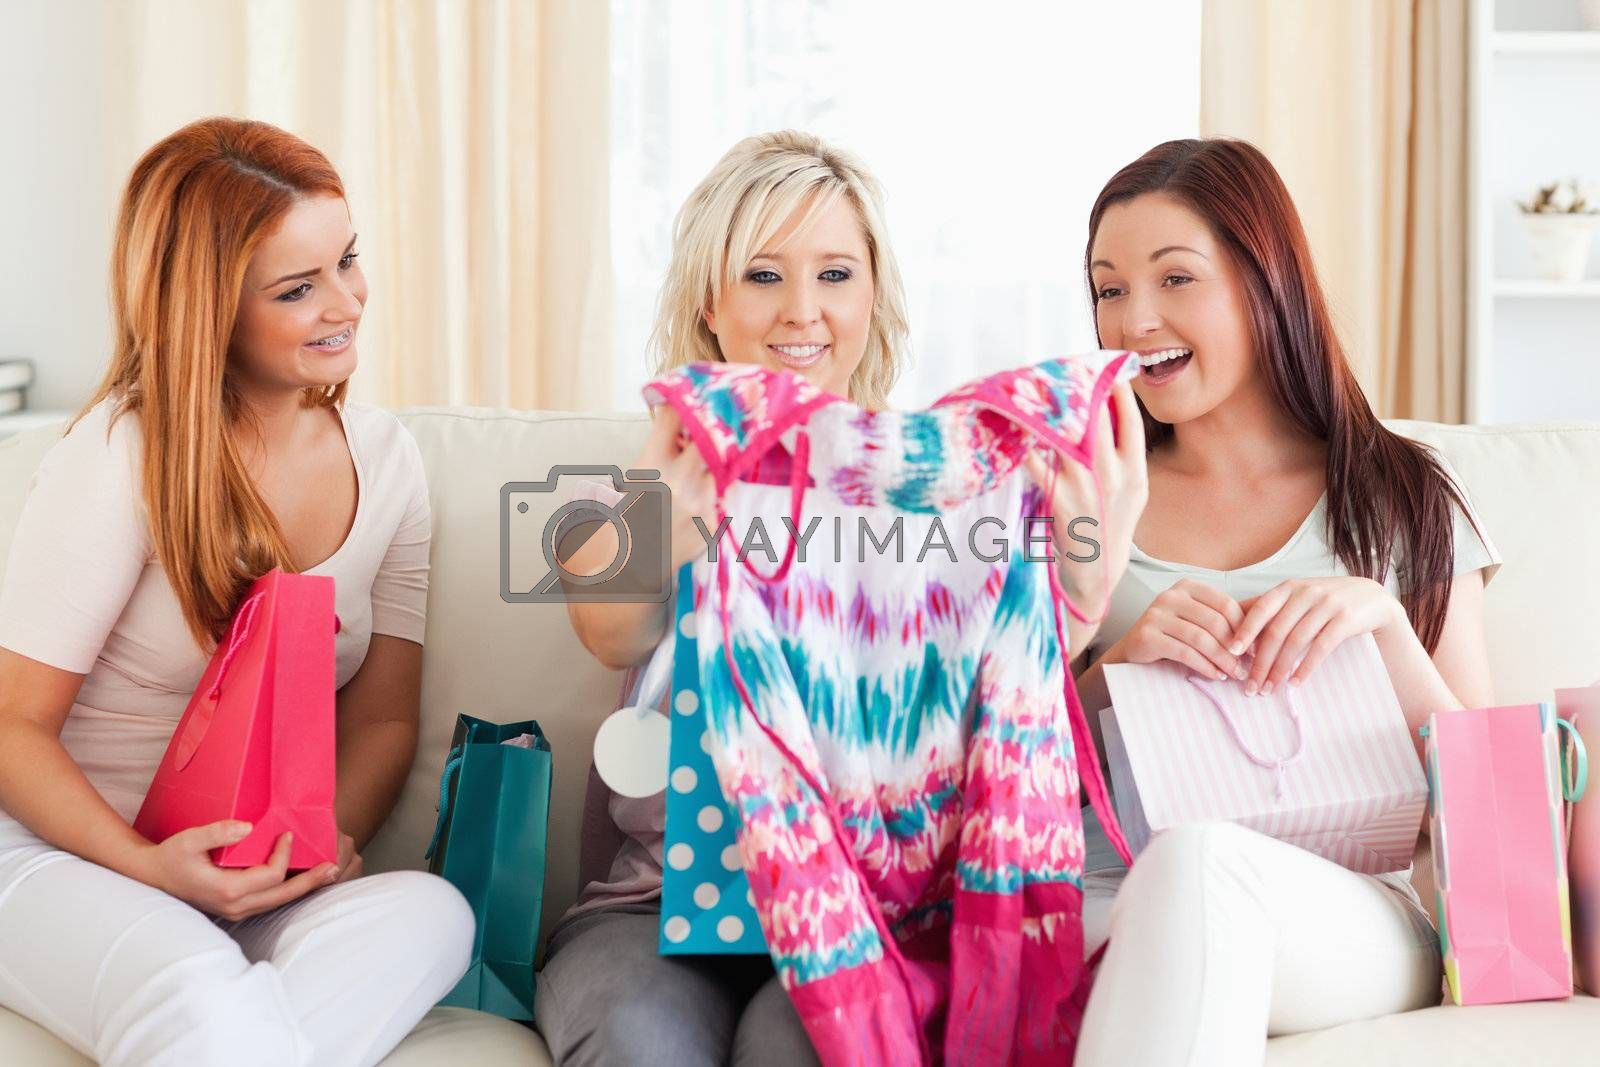 Women with shopping bags in a living room